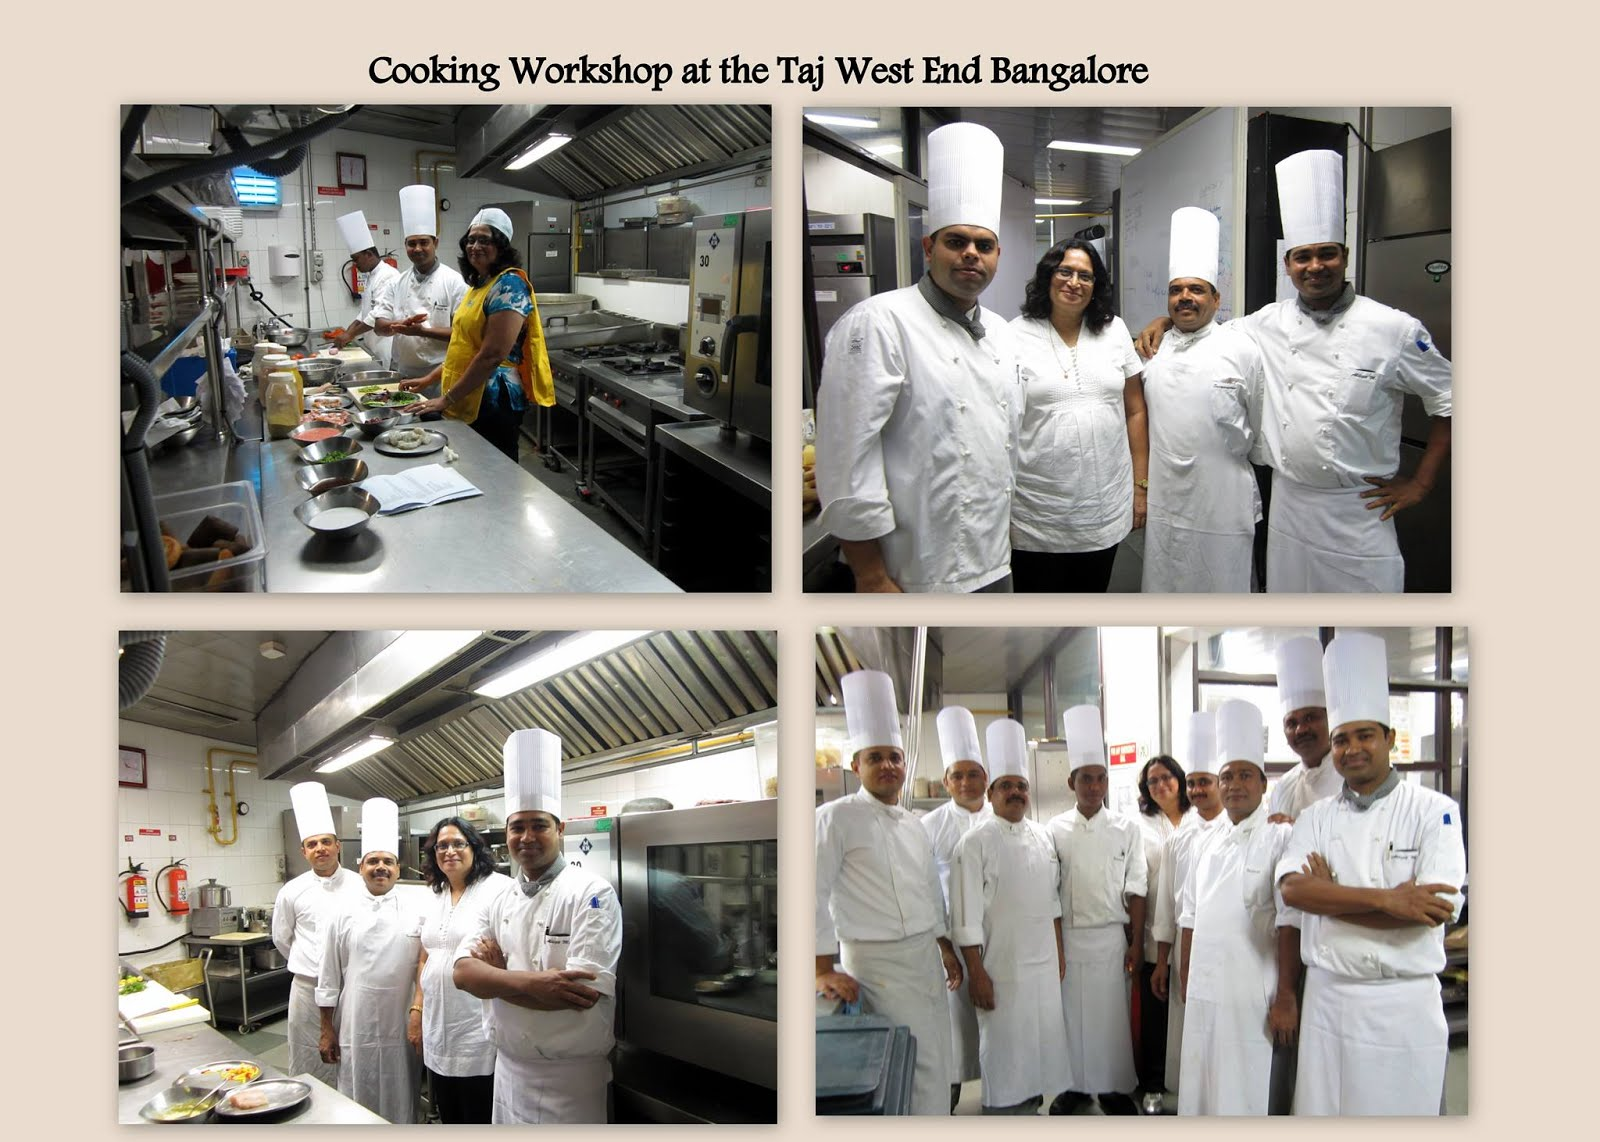 Cooking Workshop at the Taj West End Bangalore